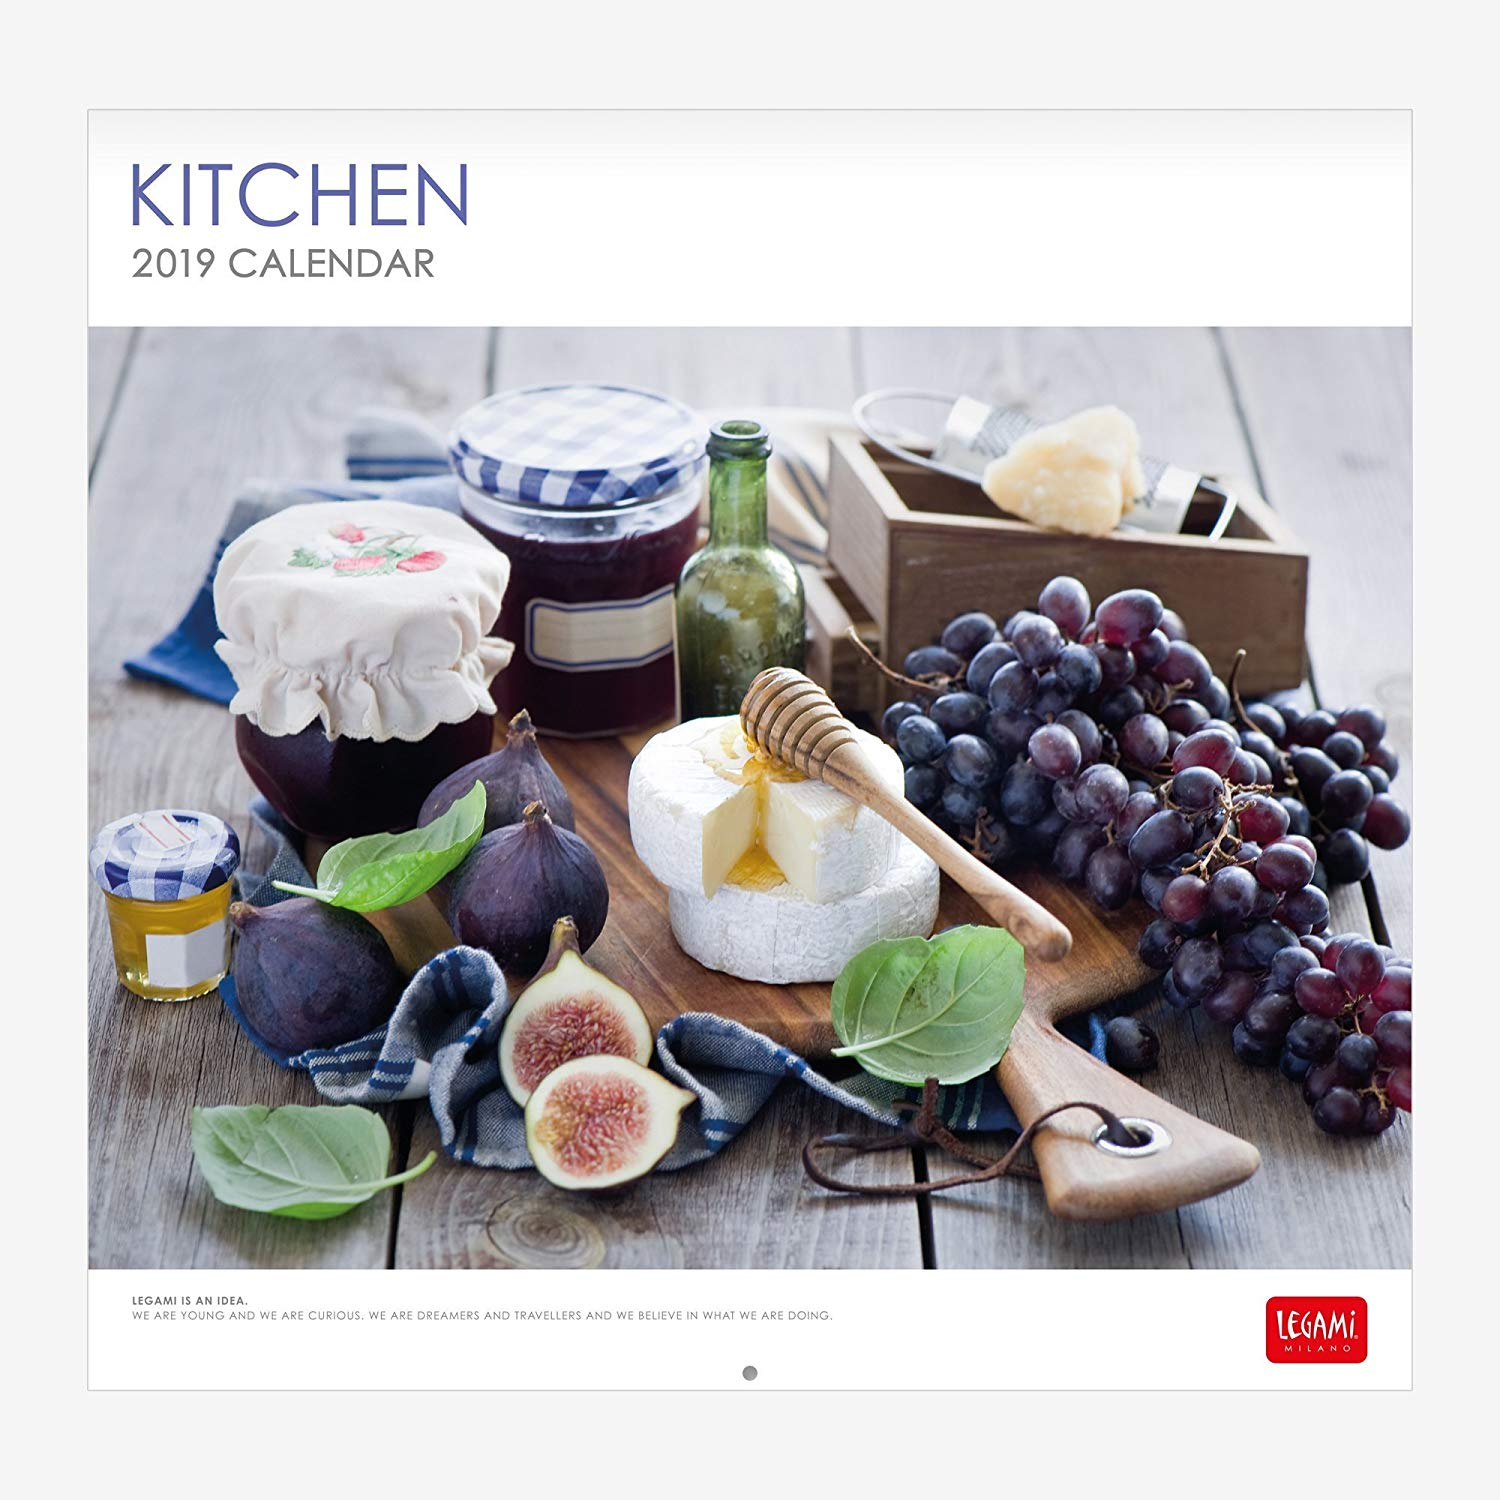 KITCHEN 12 MONTH CALENDAR (PHOTO)